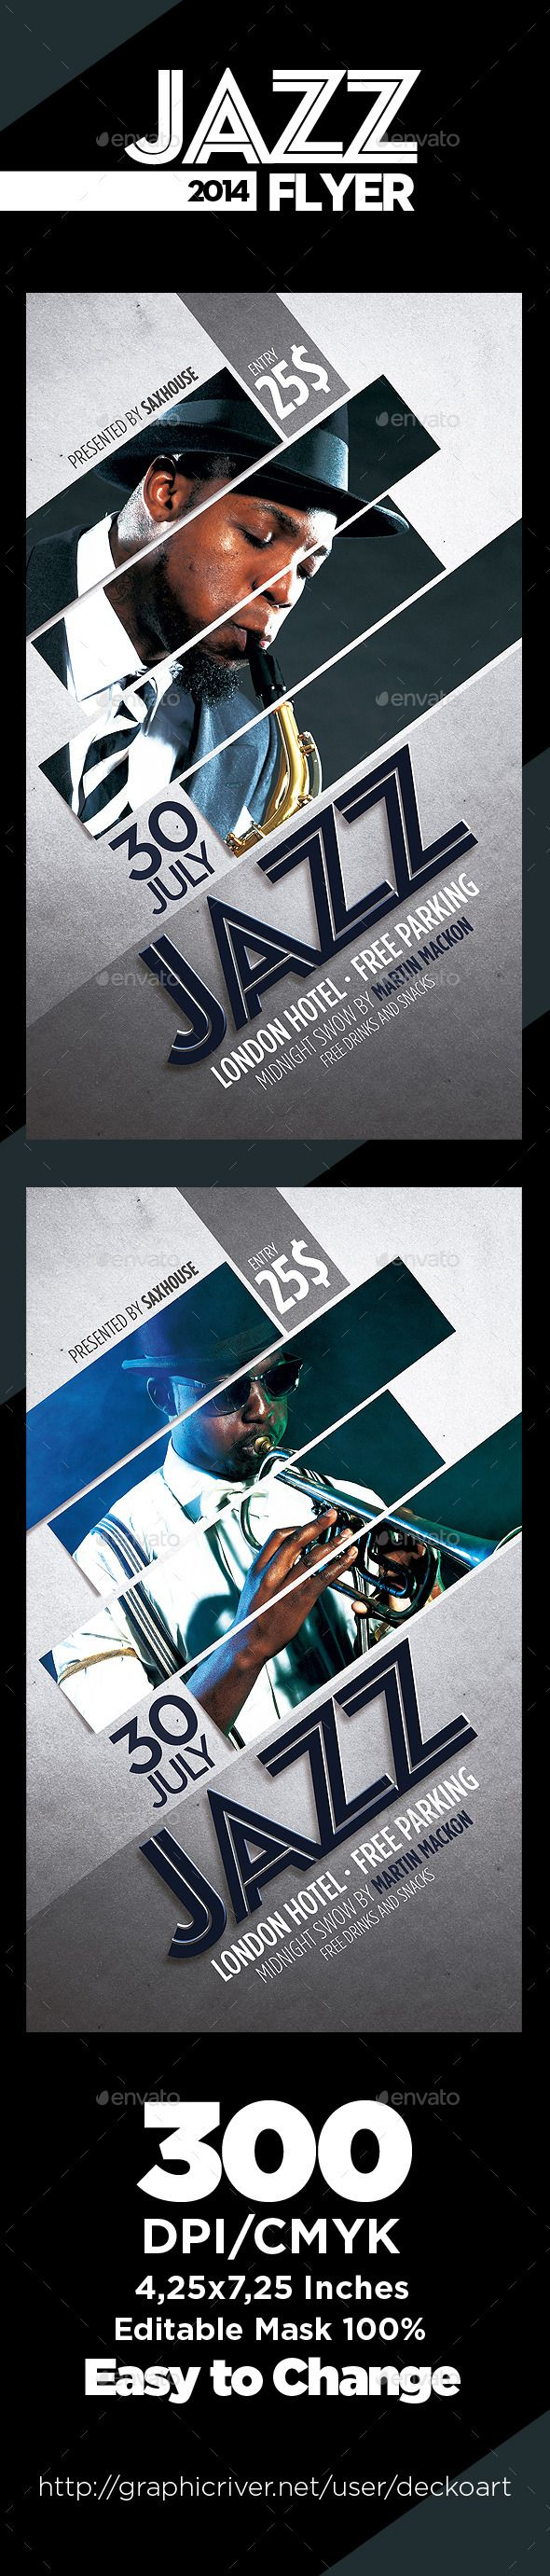 best ideas about flyer layout graphic design jazz flyer